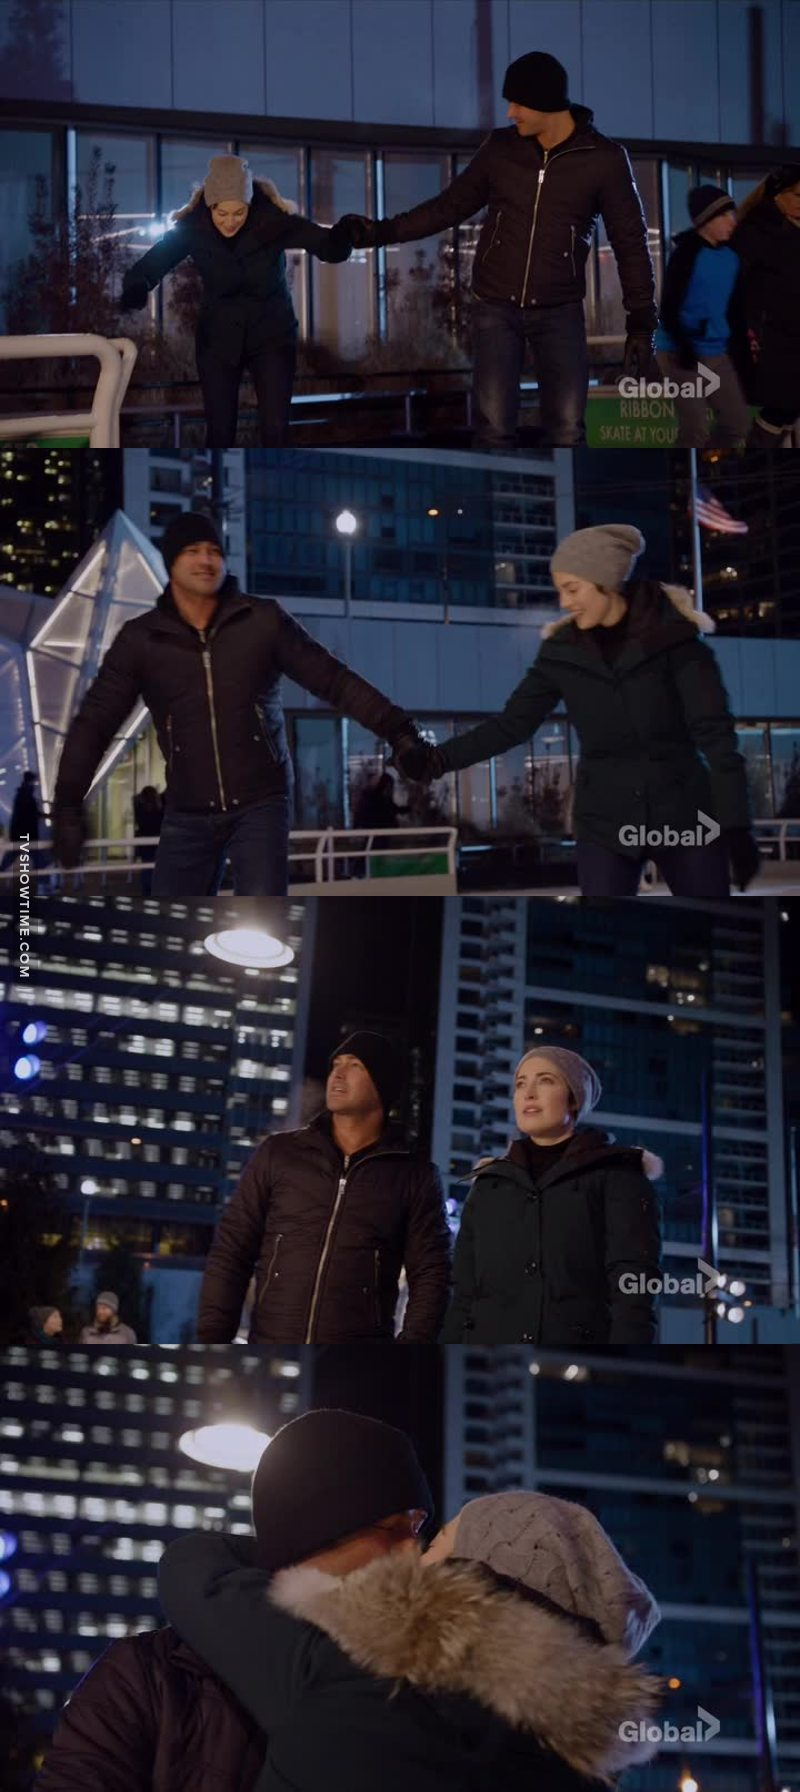 They make such a cute couple, so good to see Severide happy ❤